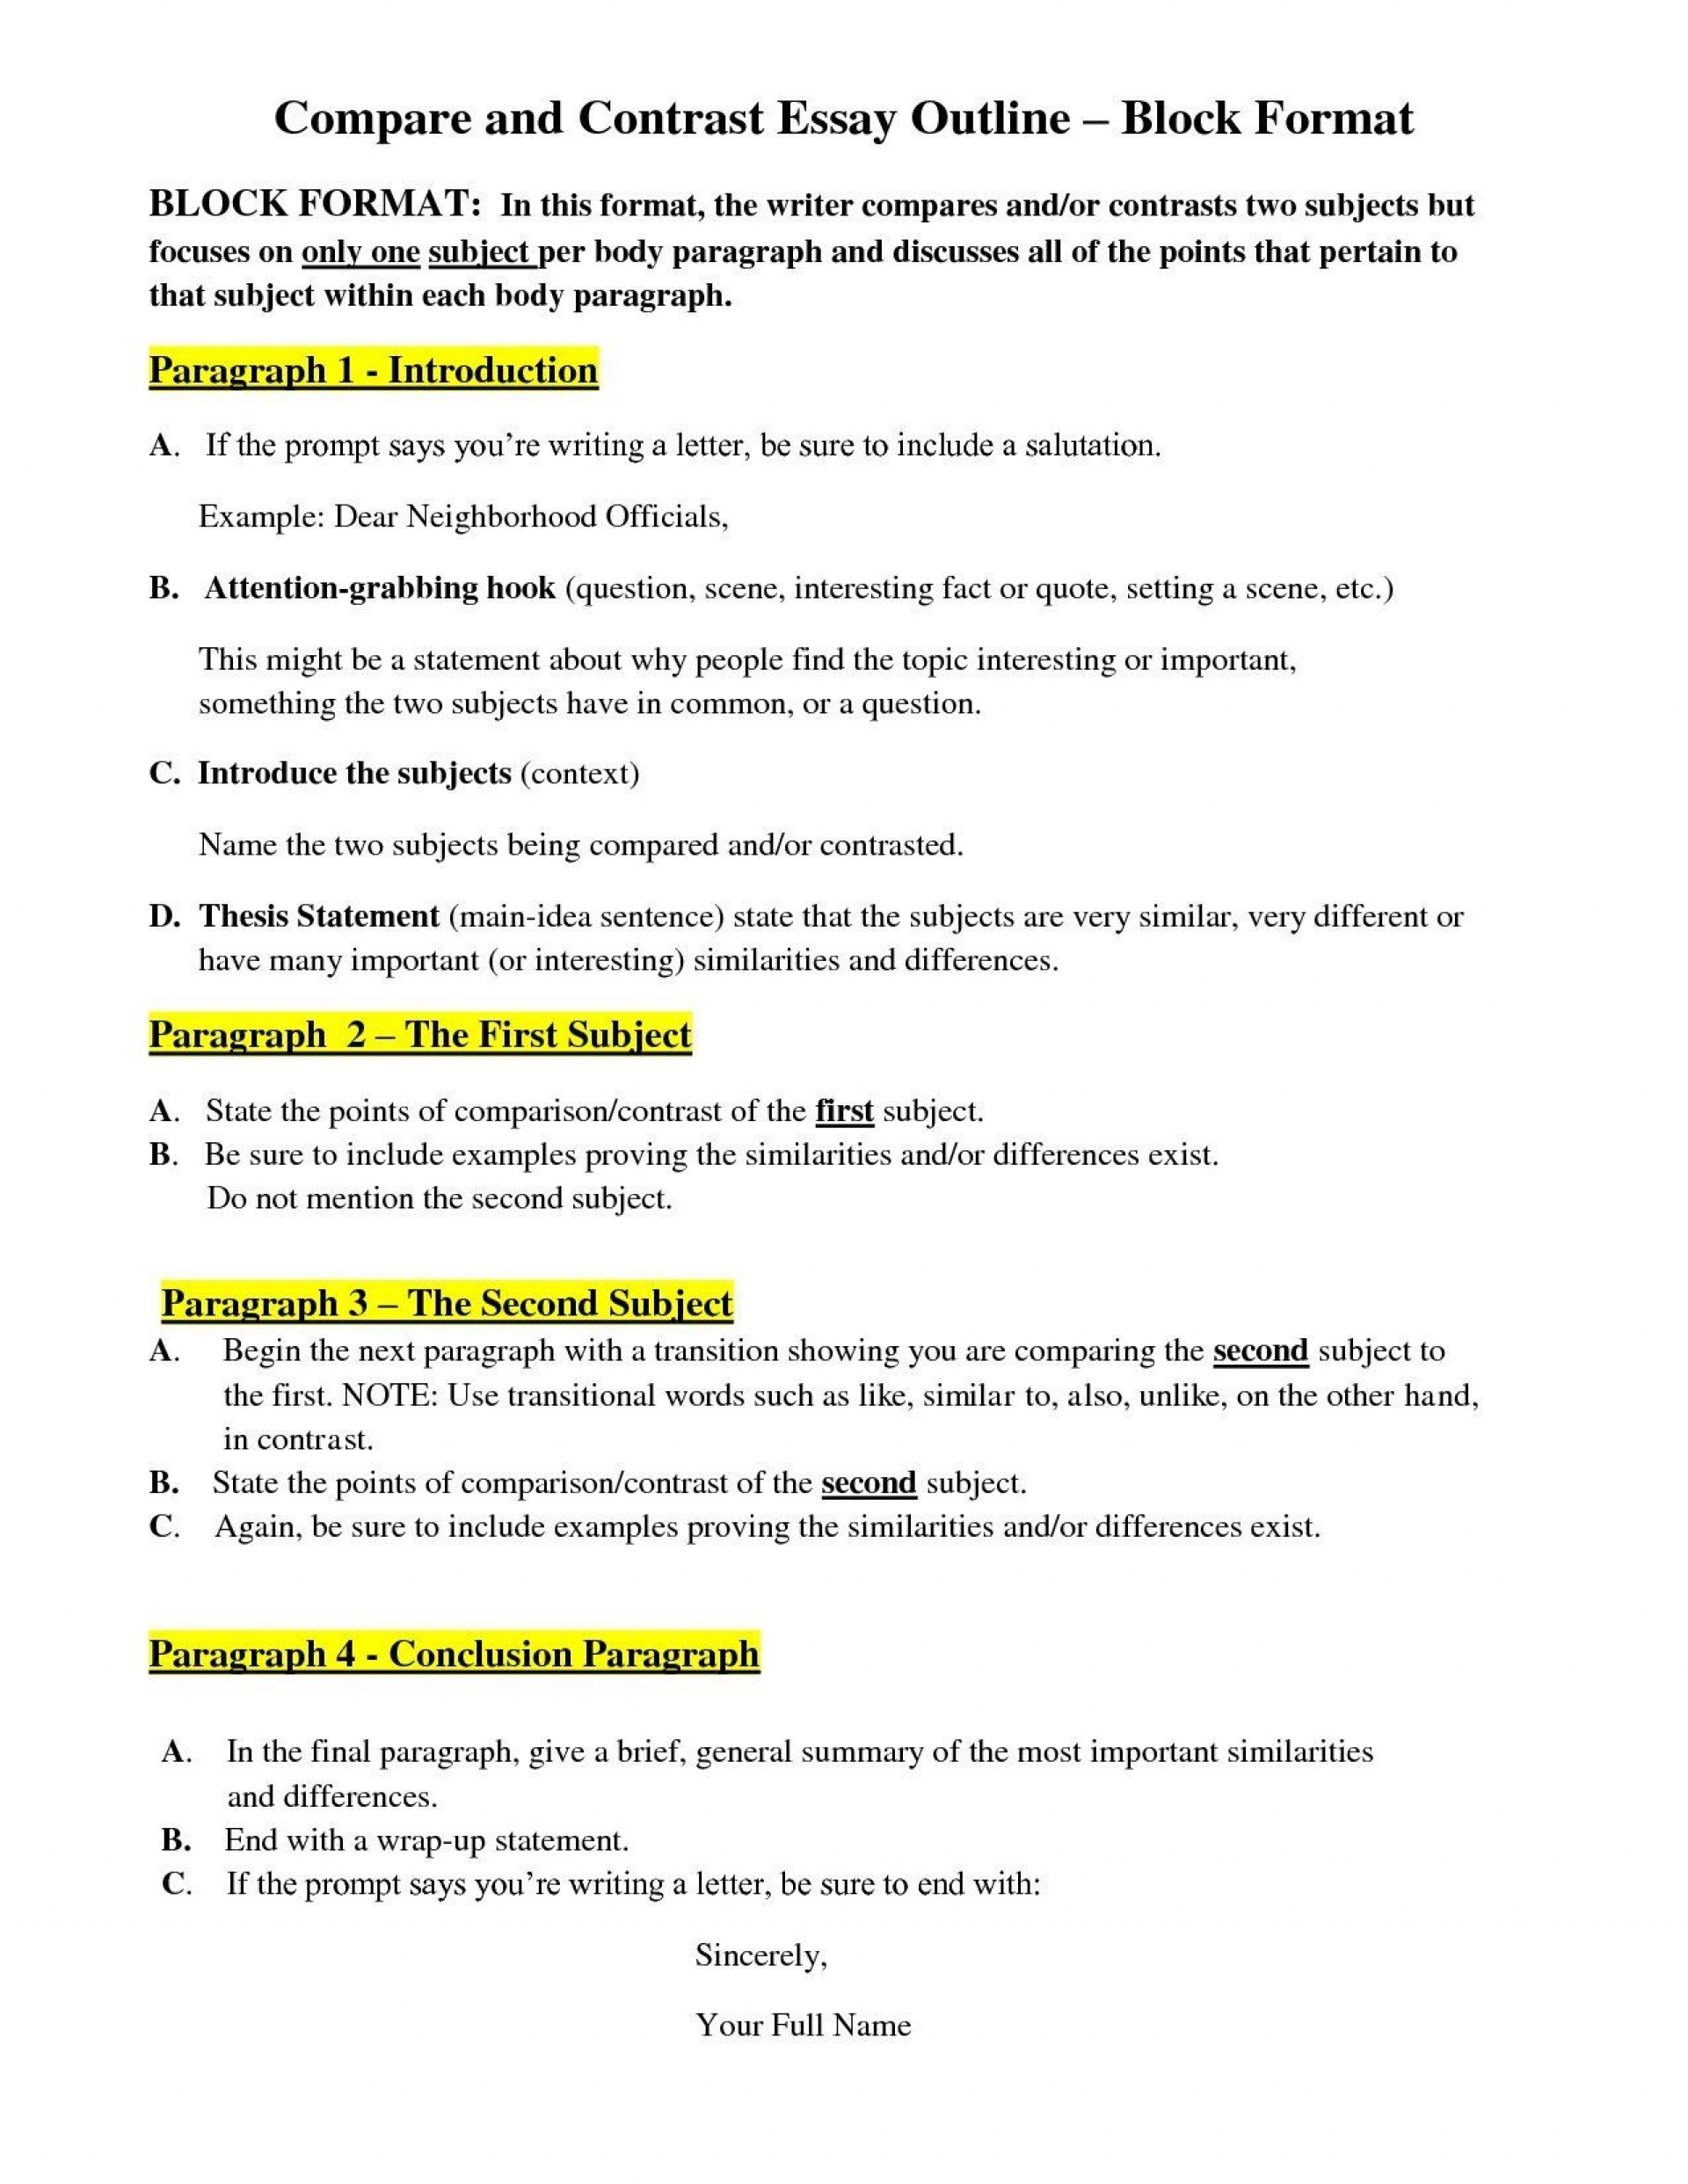 007 Compare And Contrast Essay Frightening Outline Block Method Ideas High School Template For Middle 1920